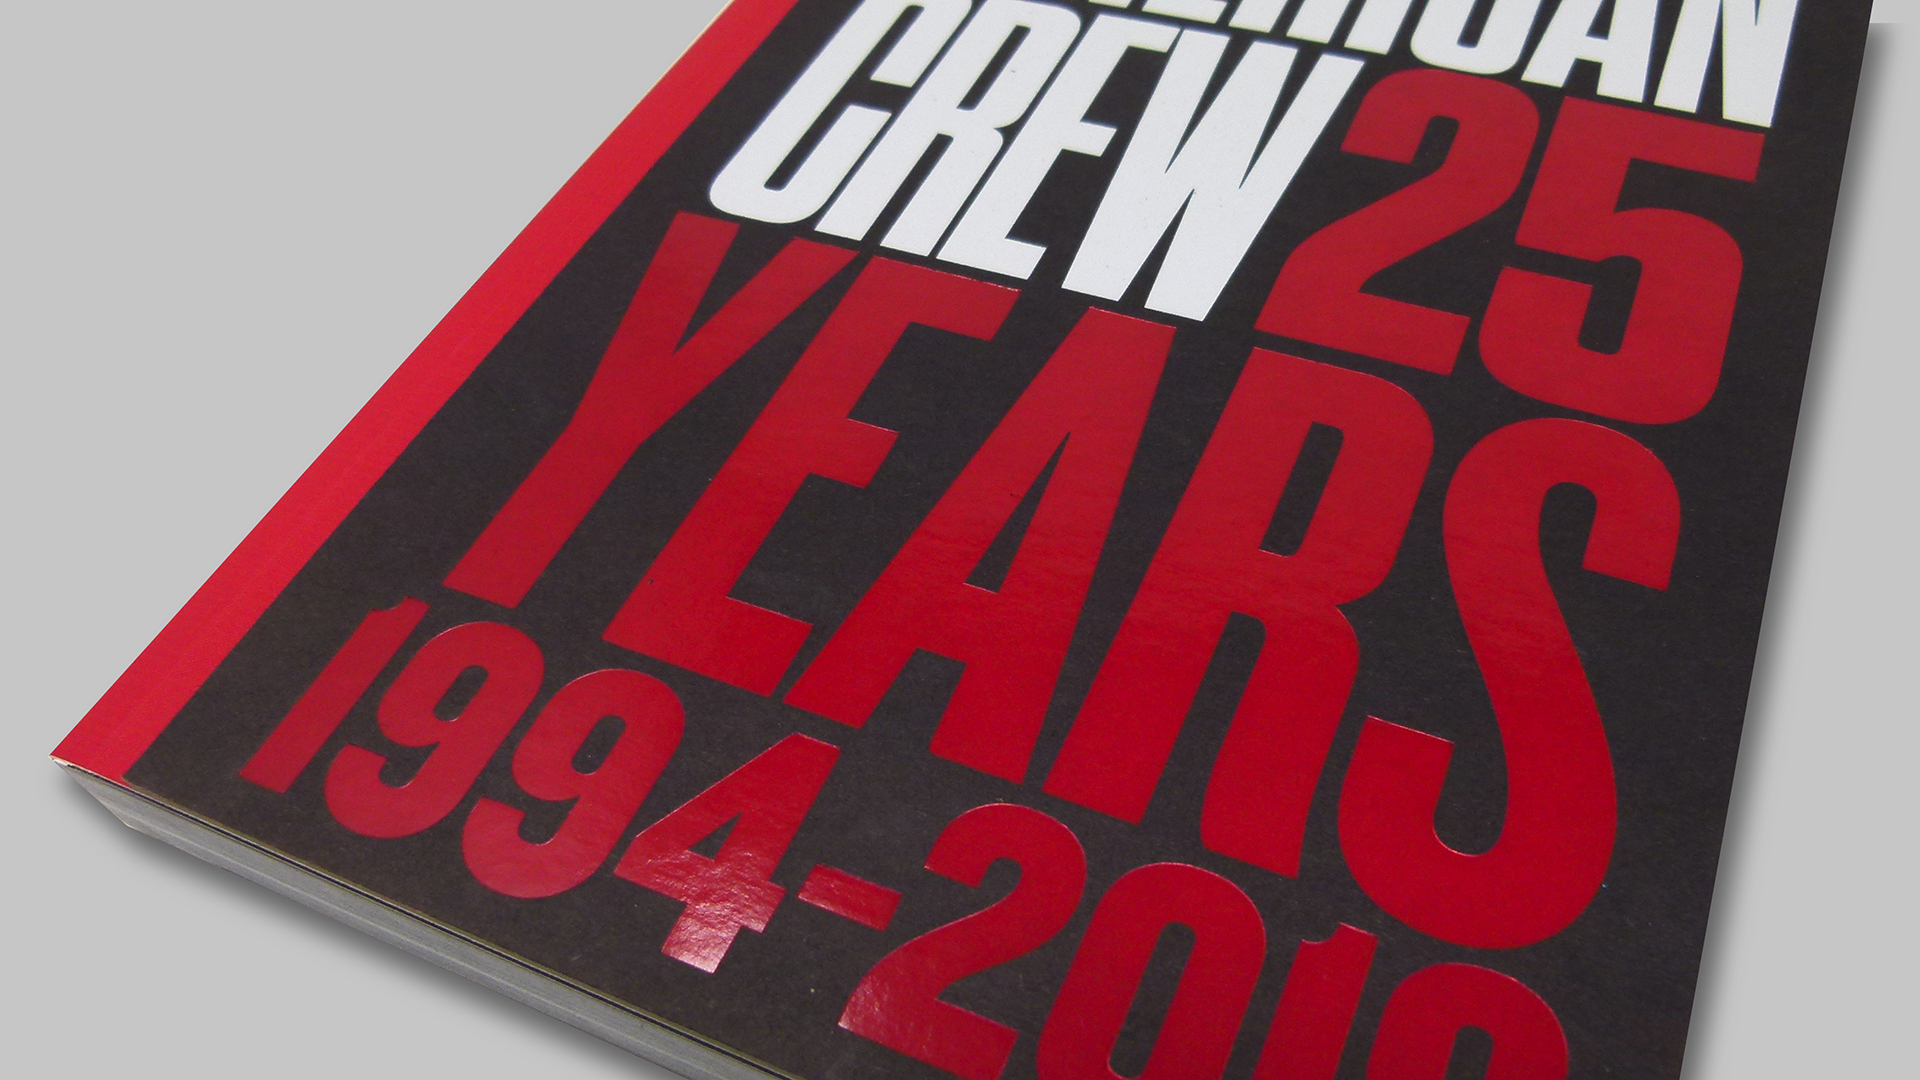 Coffee Table Book Design: 'American Crew 25 Years' - PaperSpecs